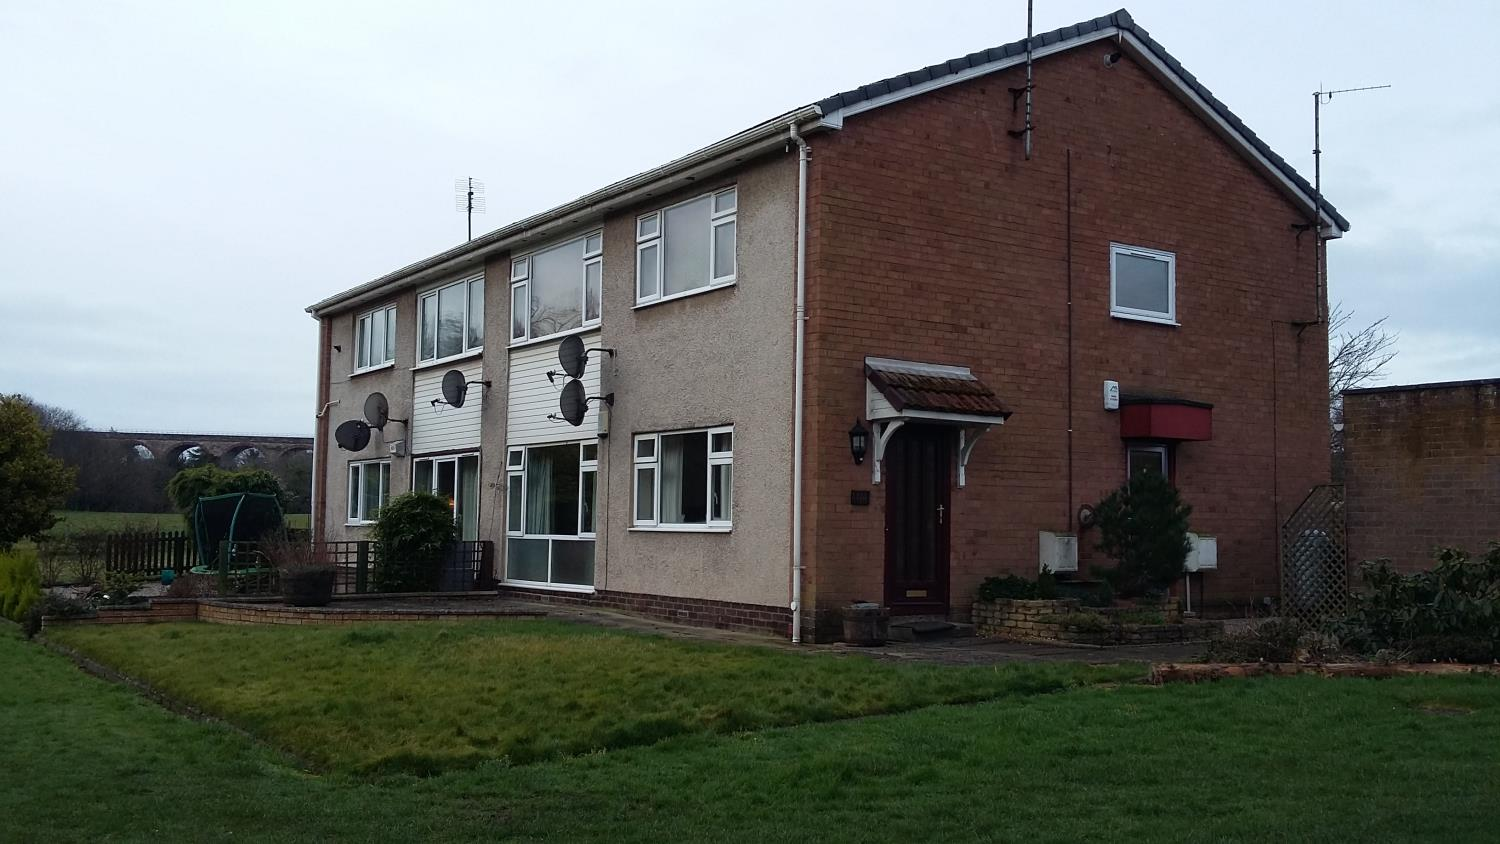 View property for rent Newbattle Abbey Crescent, Dalkeith